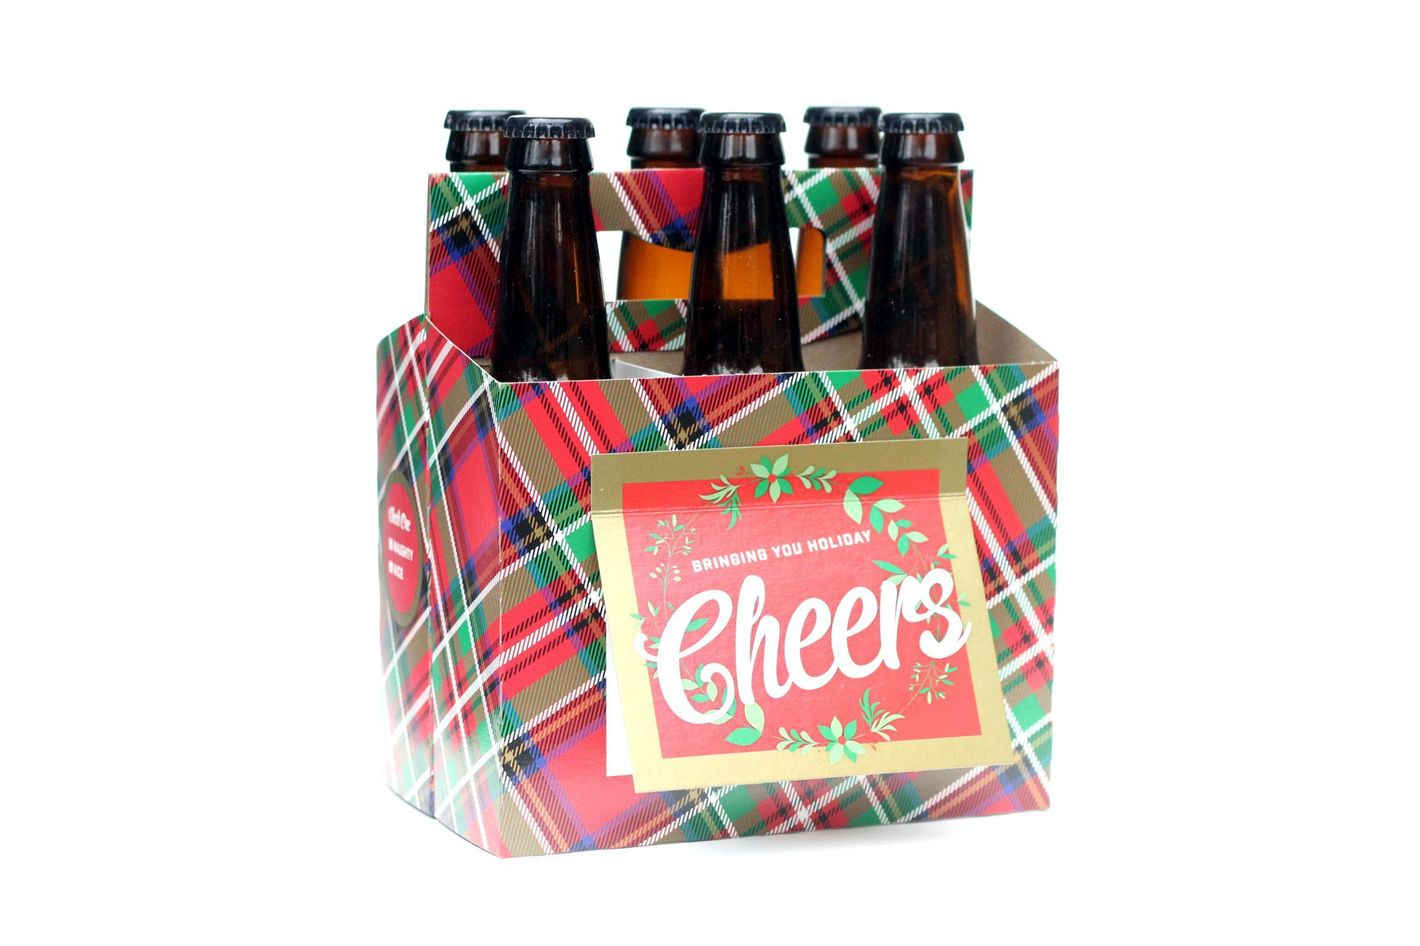 Holiday Beer Lovers Gifts — 6 Pack Beer Carrier Greeting Cards (Set of 4) in Holiday Plaid Design